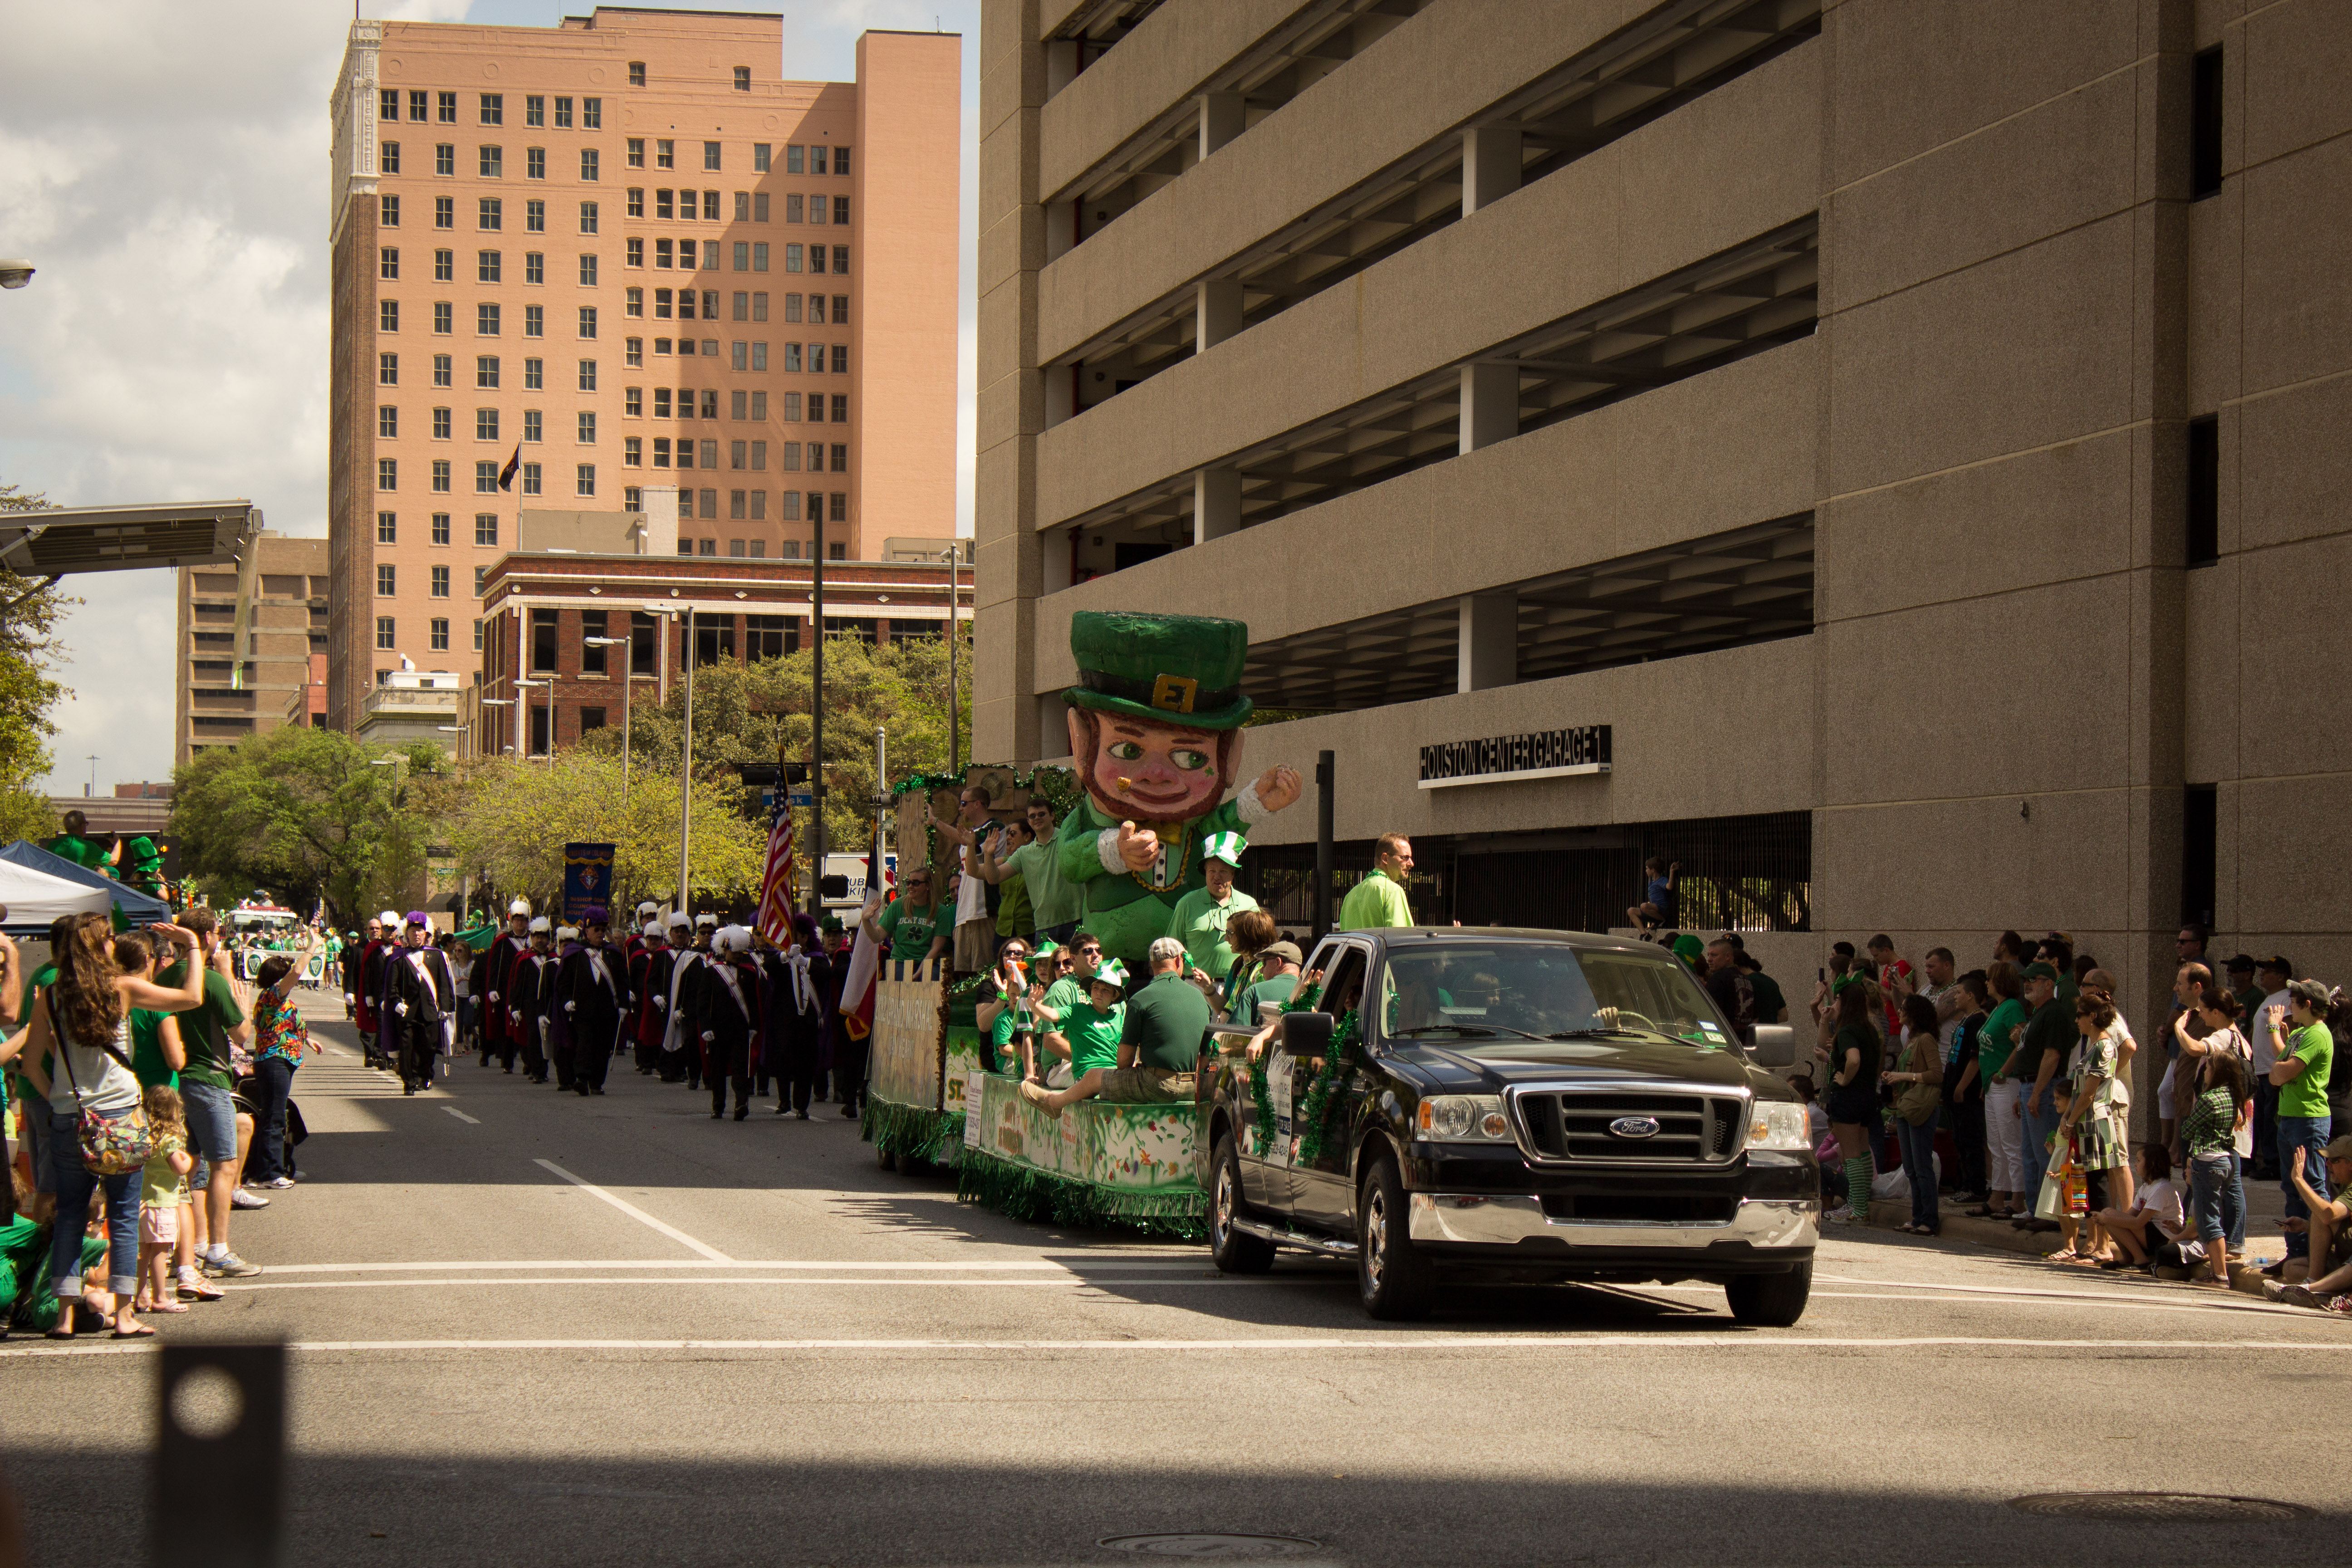 st patricks day parade downtown houston 2012 irish-3